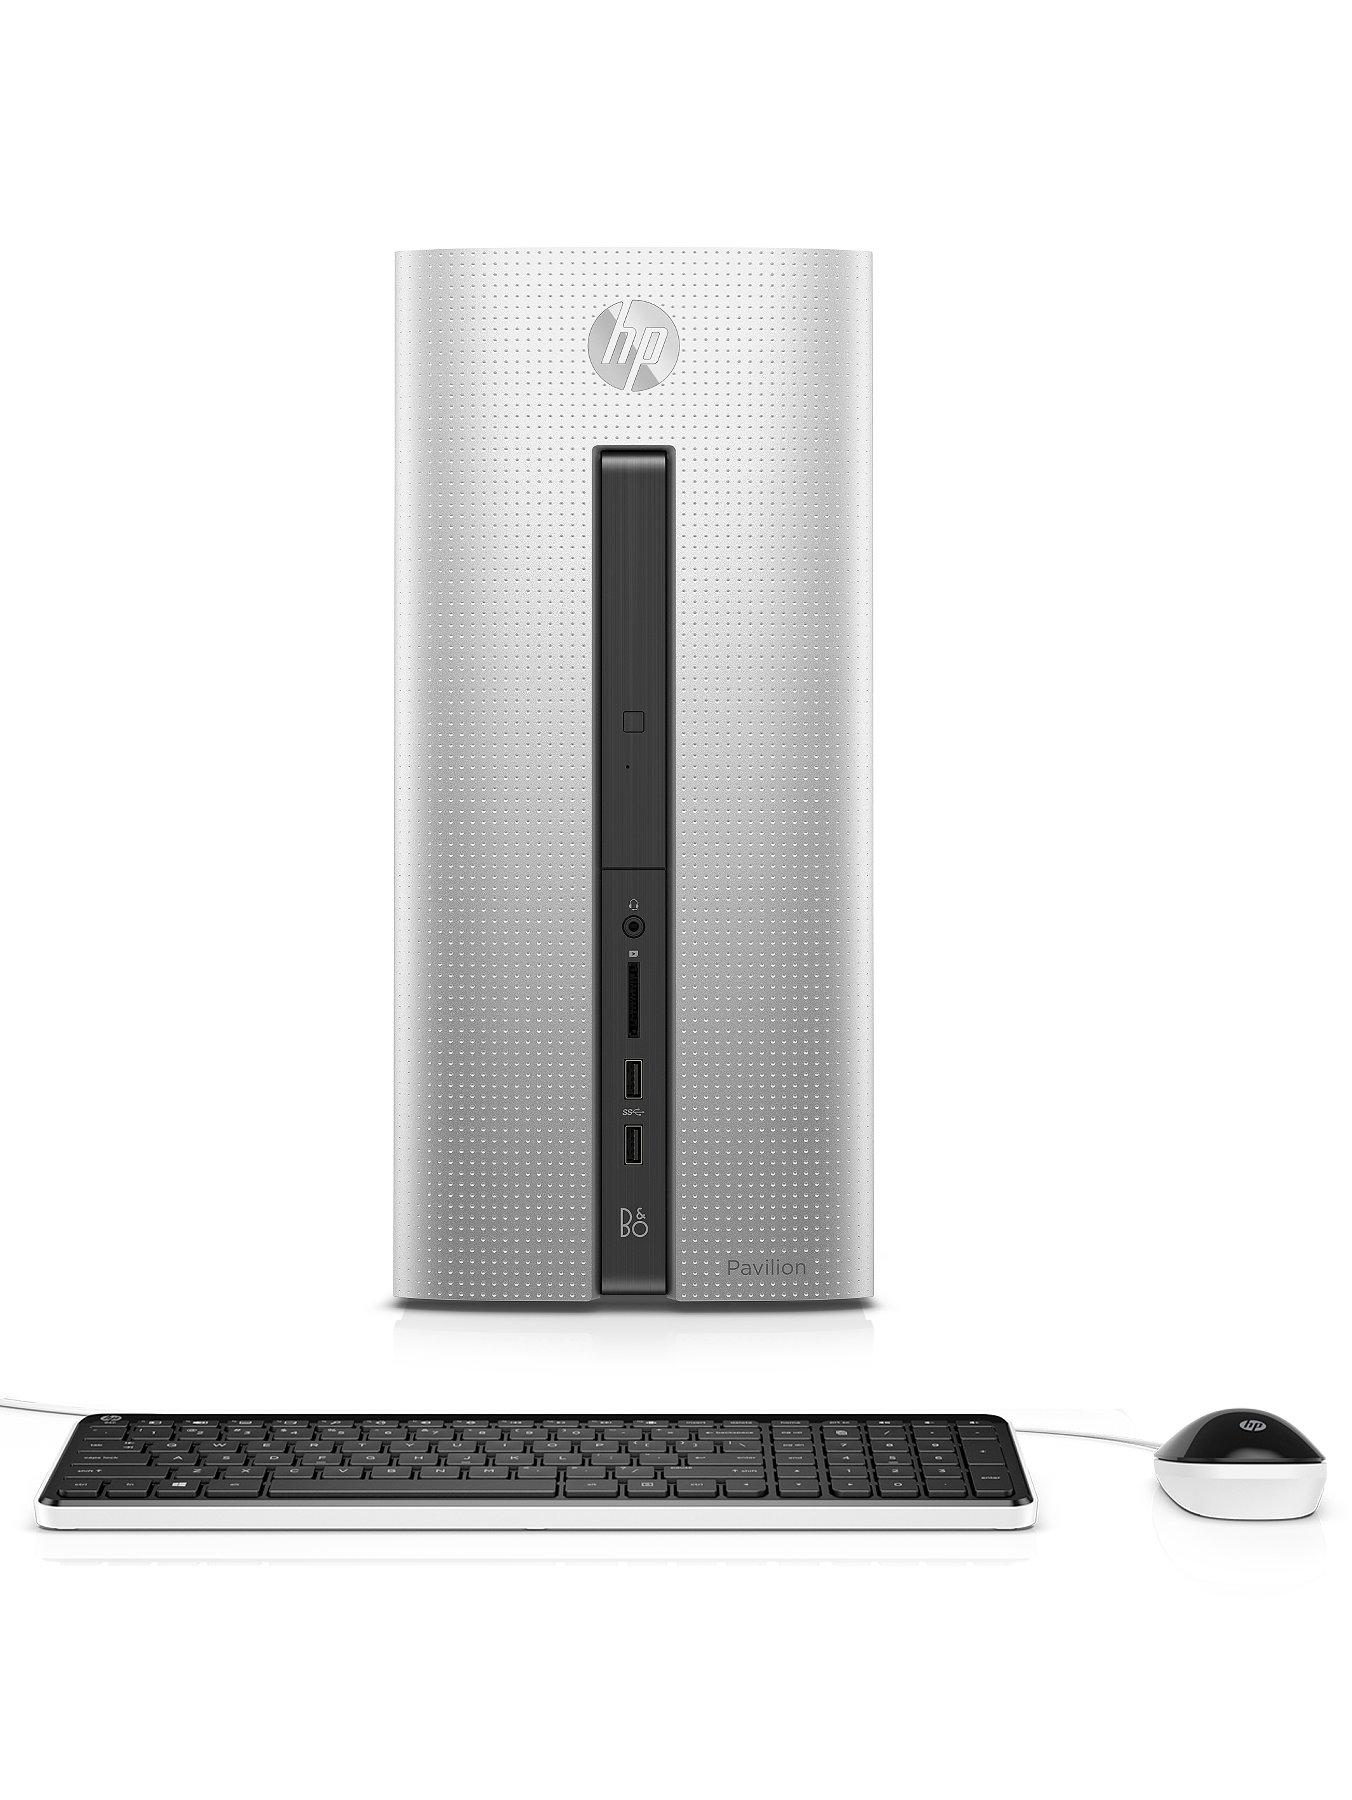 Pavilion 550030na Intel Core i3 Processor 8Gb RAM 1Tb HDD Storage Desktop Base Unit Intel HD with Optional Microsoft Office 365 Personal  Natural Silver